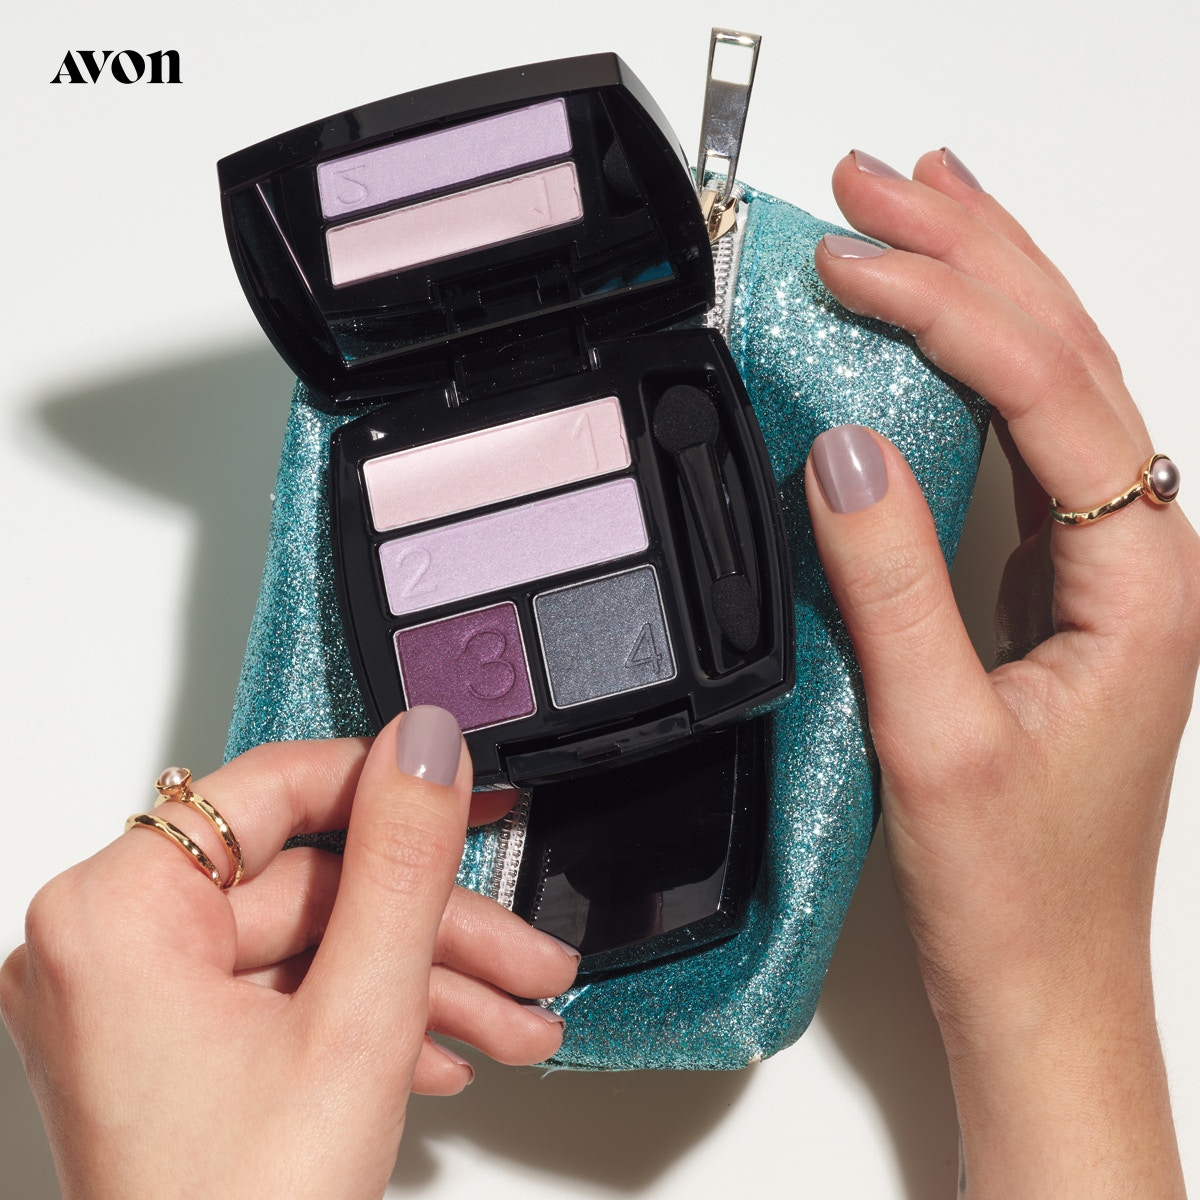 Avon True Color Eyeshadow Quad AVON TRUE COLOR means the color you buy is the color you apply. Now all your favorite lipsticks, glosses, eyeshadows and nail enamel have Avon's acclaimed TRUE COLOR technology.  http://go.youravon.com/3j7swr pic.twitter.com/BdBX2SgNxK